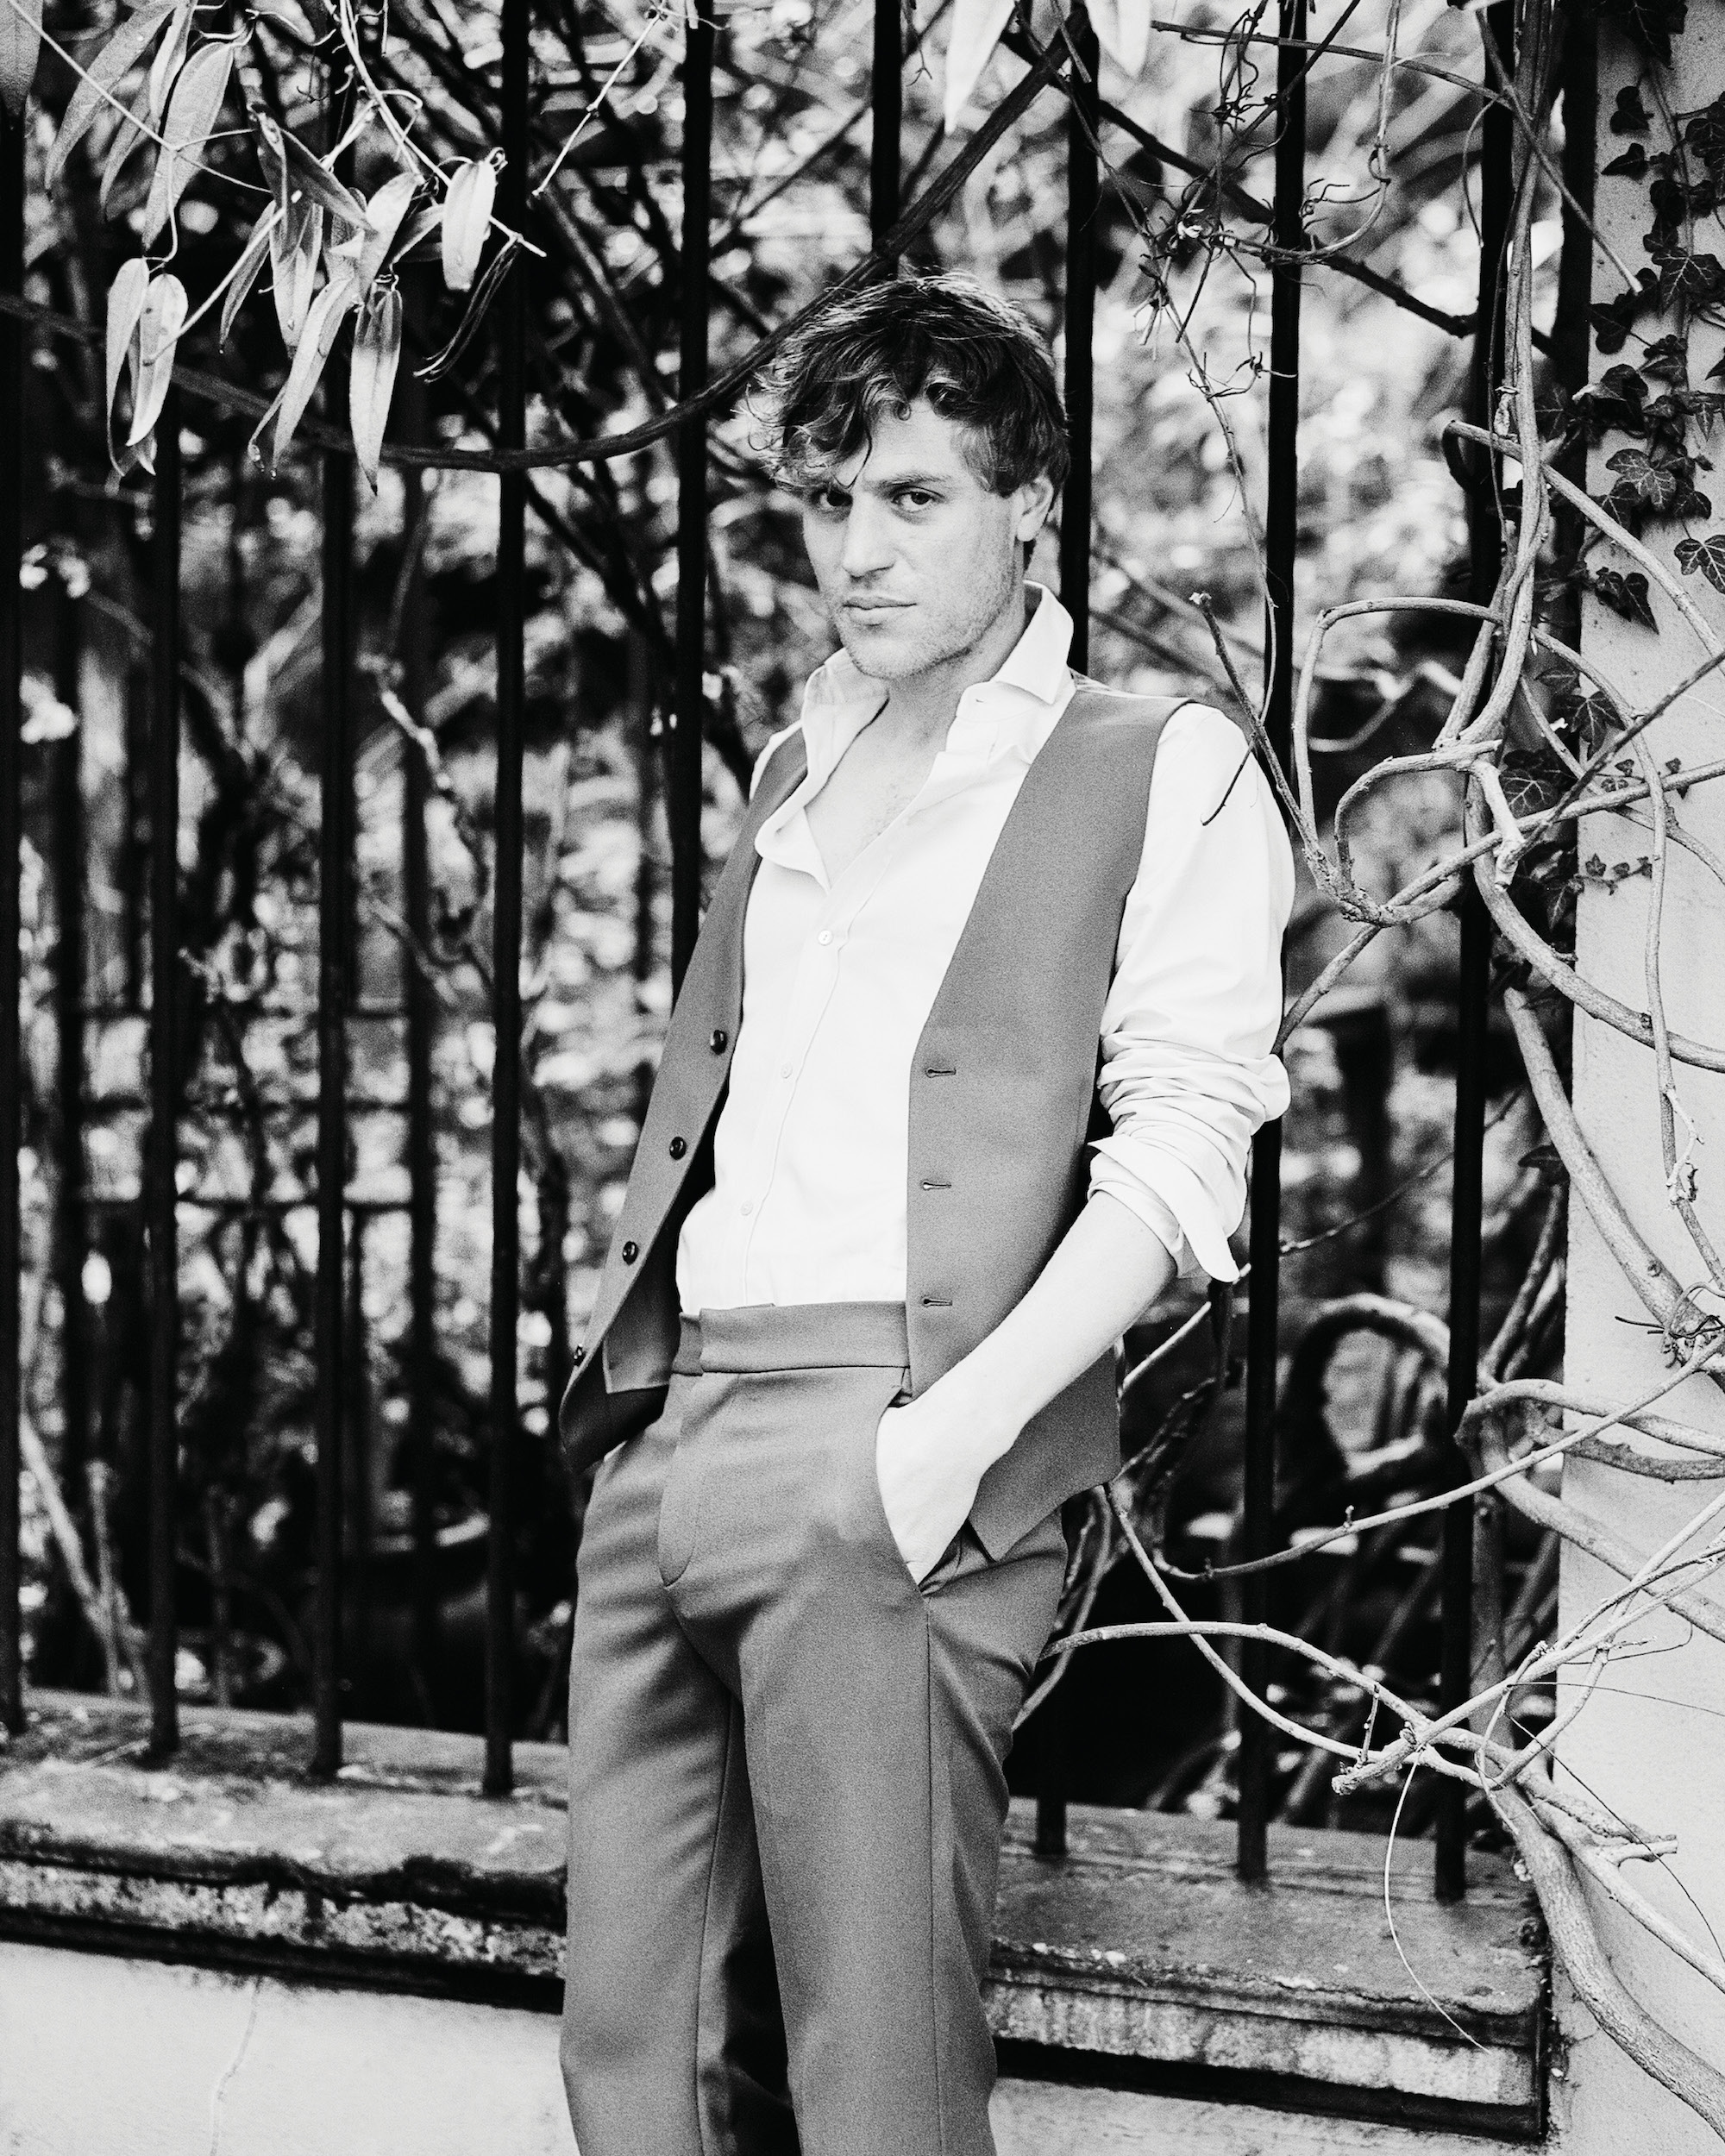 Johnny Flynn interviewed for Man About Town: 2020, Chapter I waistcoat